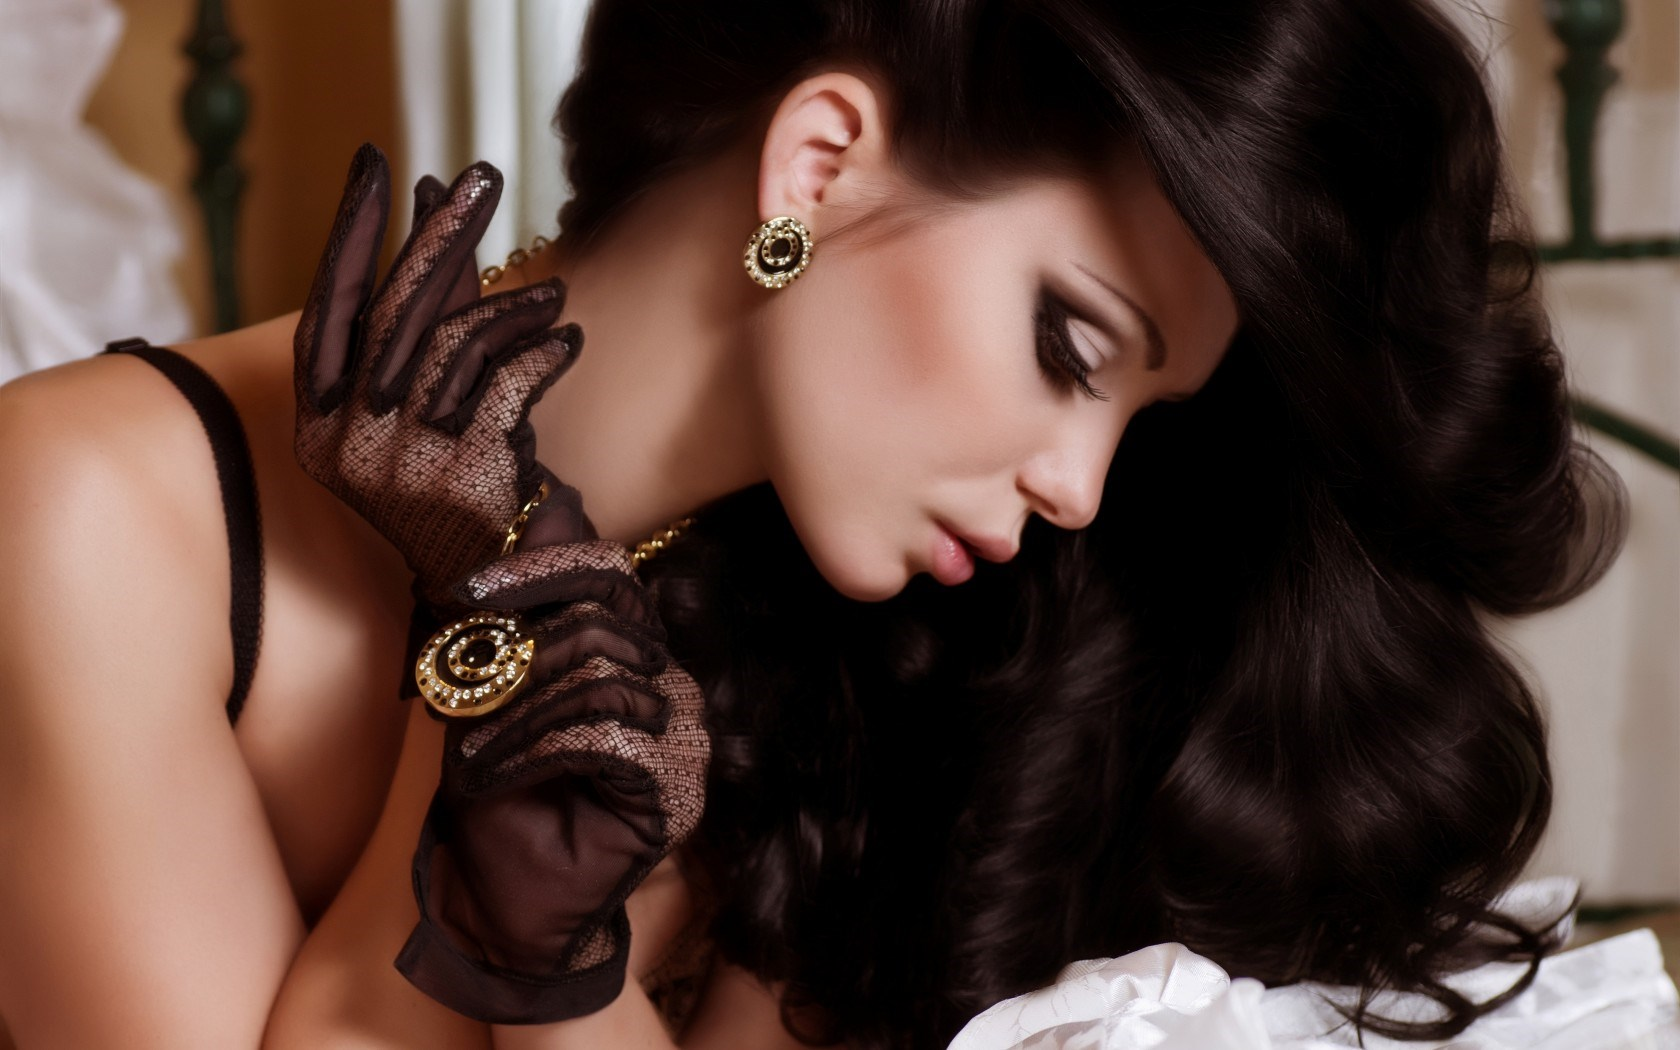 Girl Brunette Model Pendant Earrings Jewelry Gloves